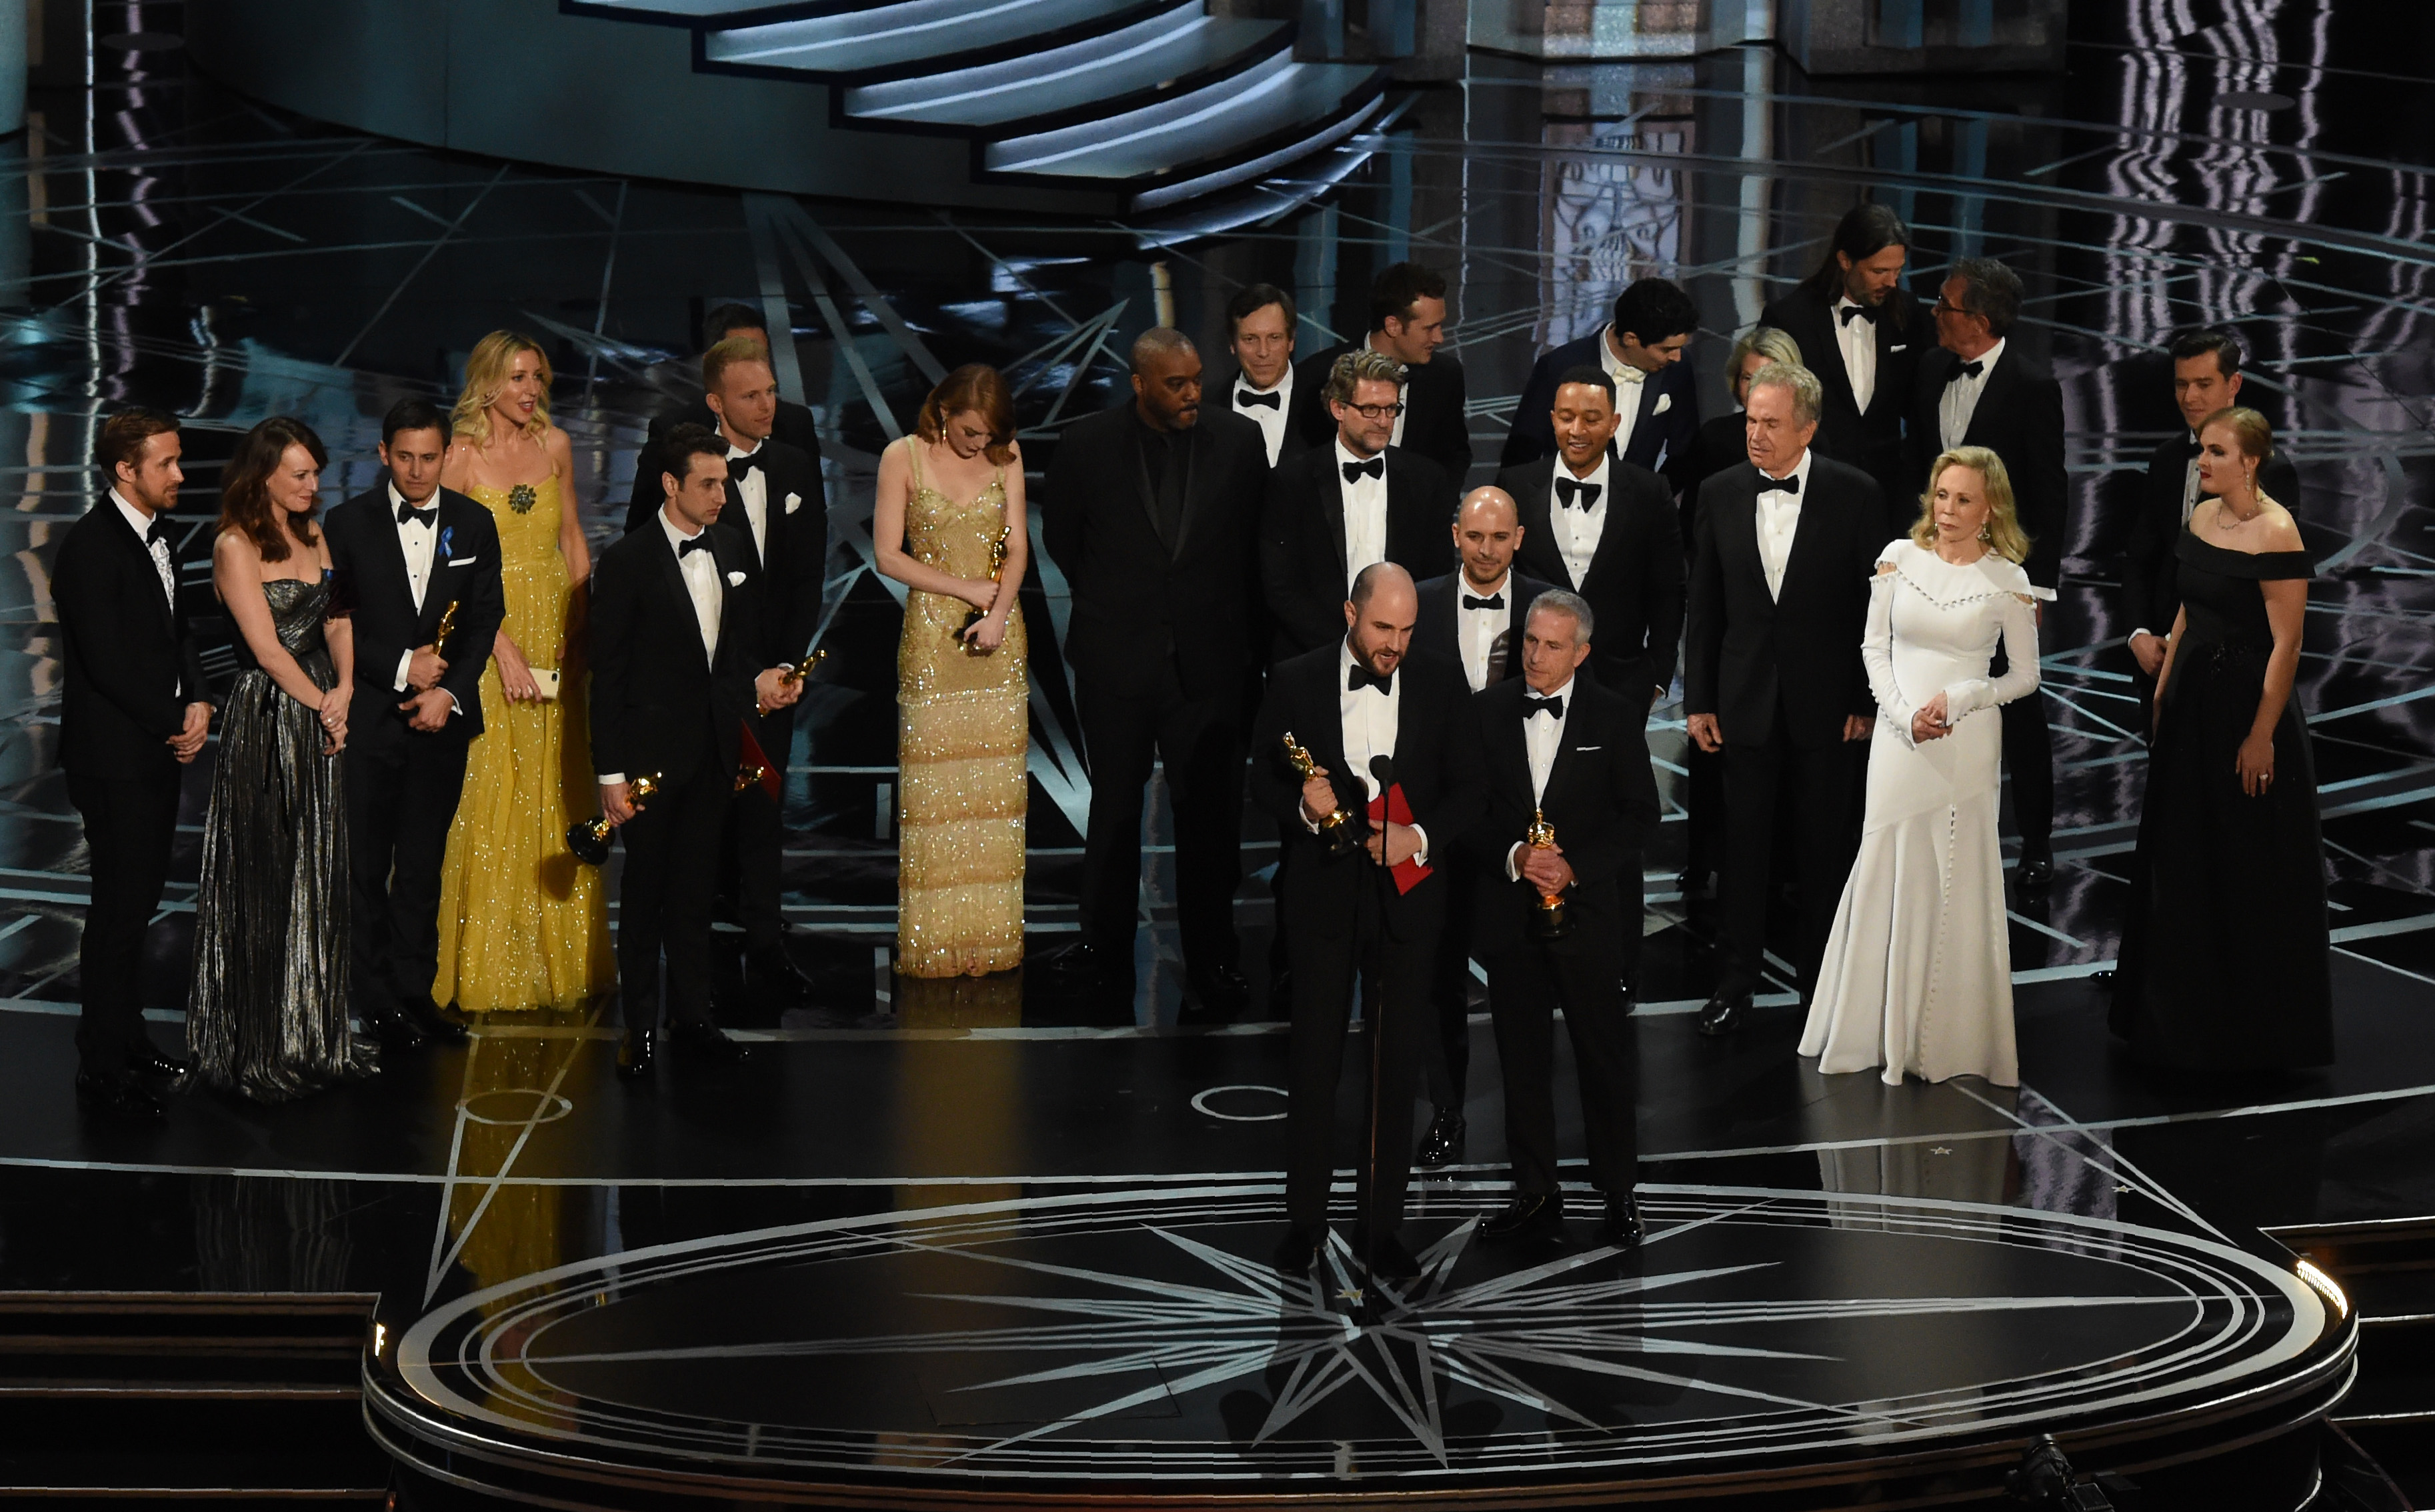 'La La Land' producer Jordan Horowitz (C) speaks while holing an oscar and the winner card before reading the actual Best Picture winner 'Moonlight' onstage during the 89th Oscars on February 26, 2017 in Hollywood, California